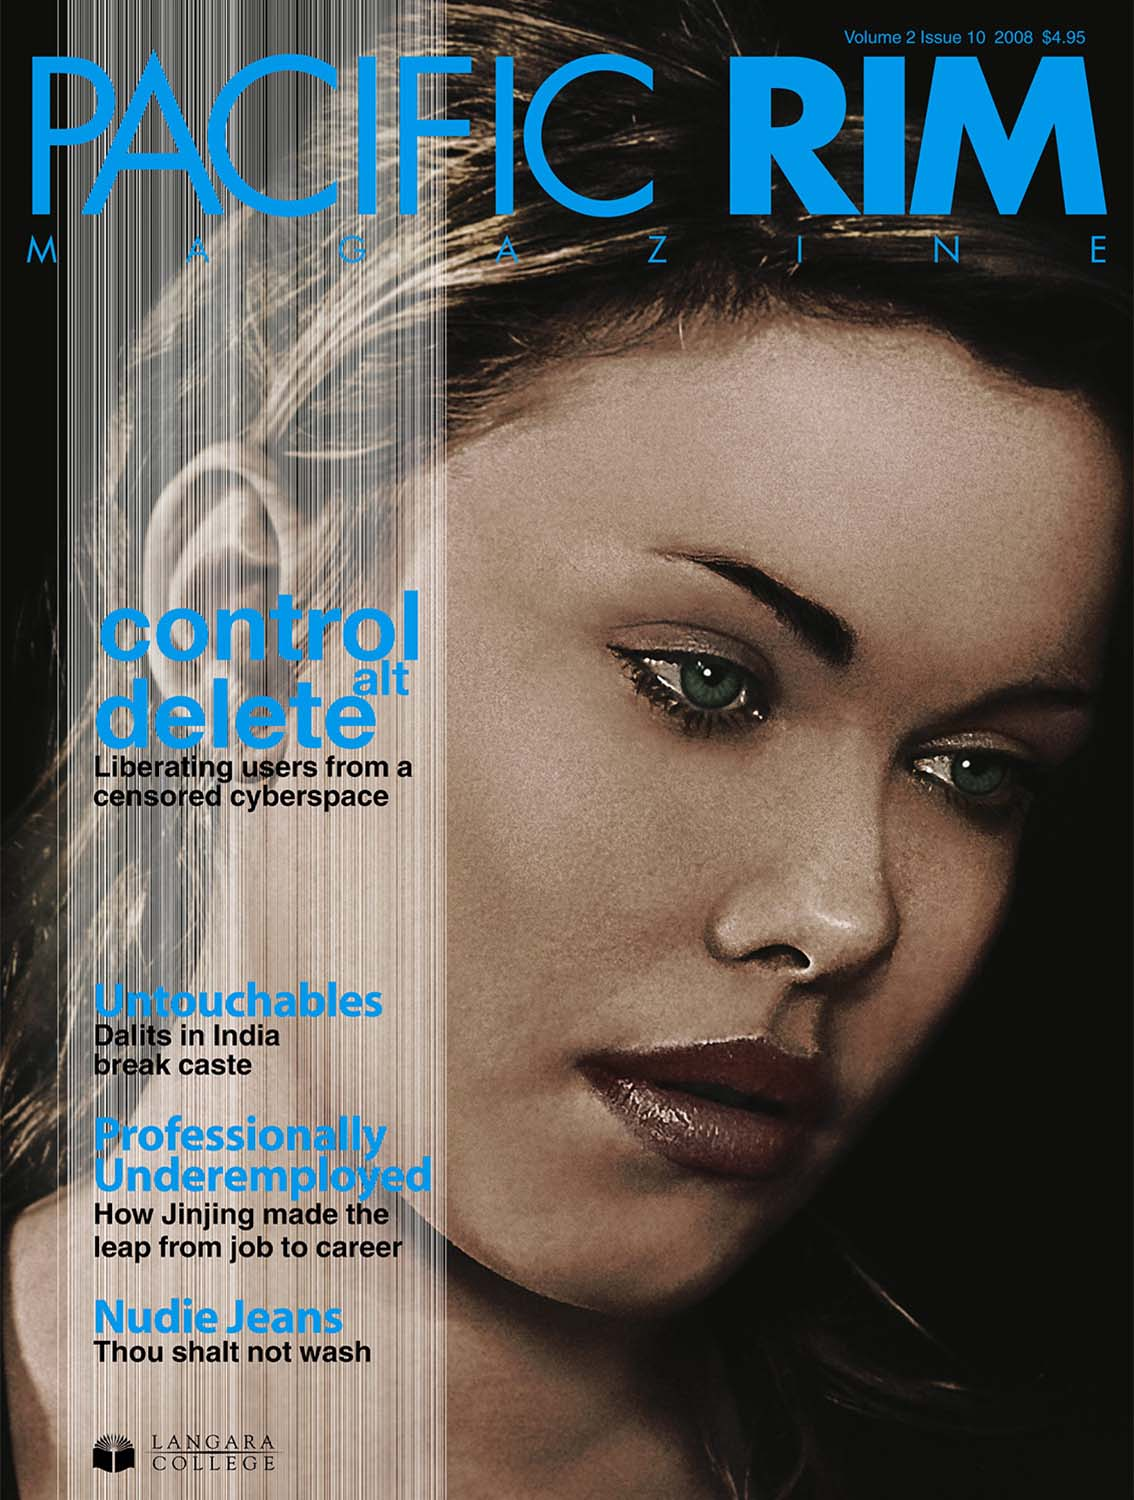 2008 Pacific Rim Cover, Closeup Portrait of Woman's Face.